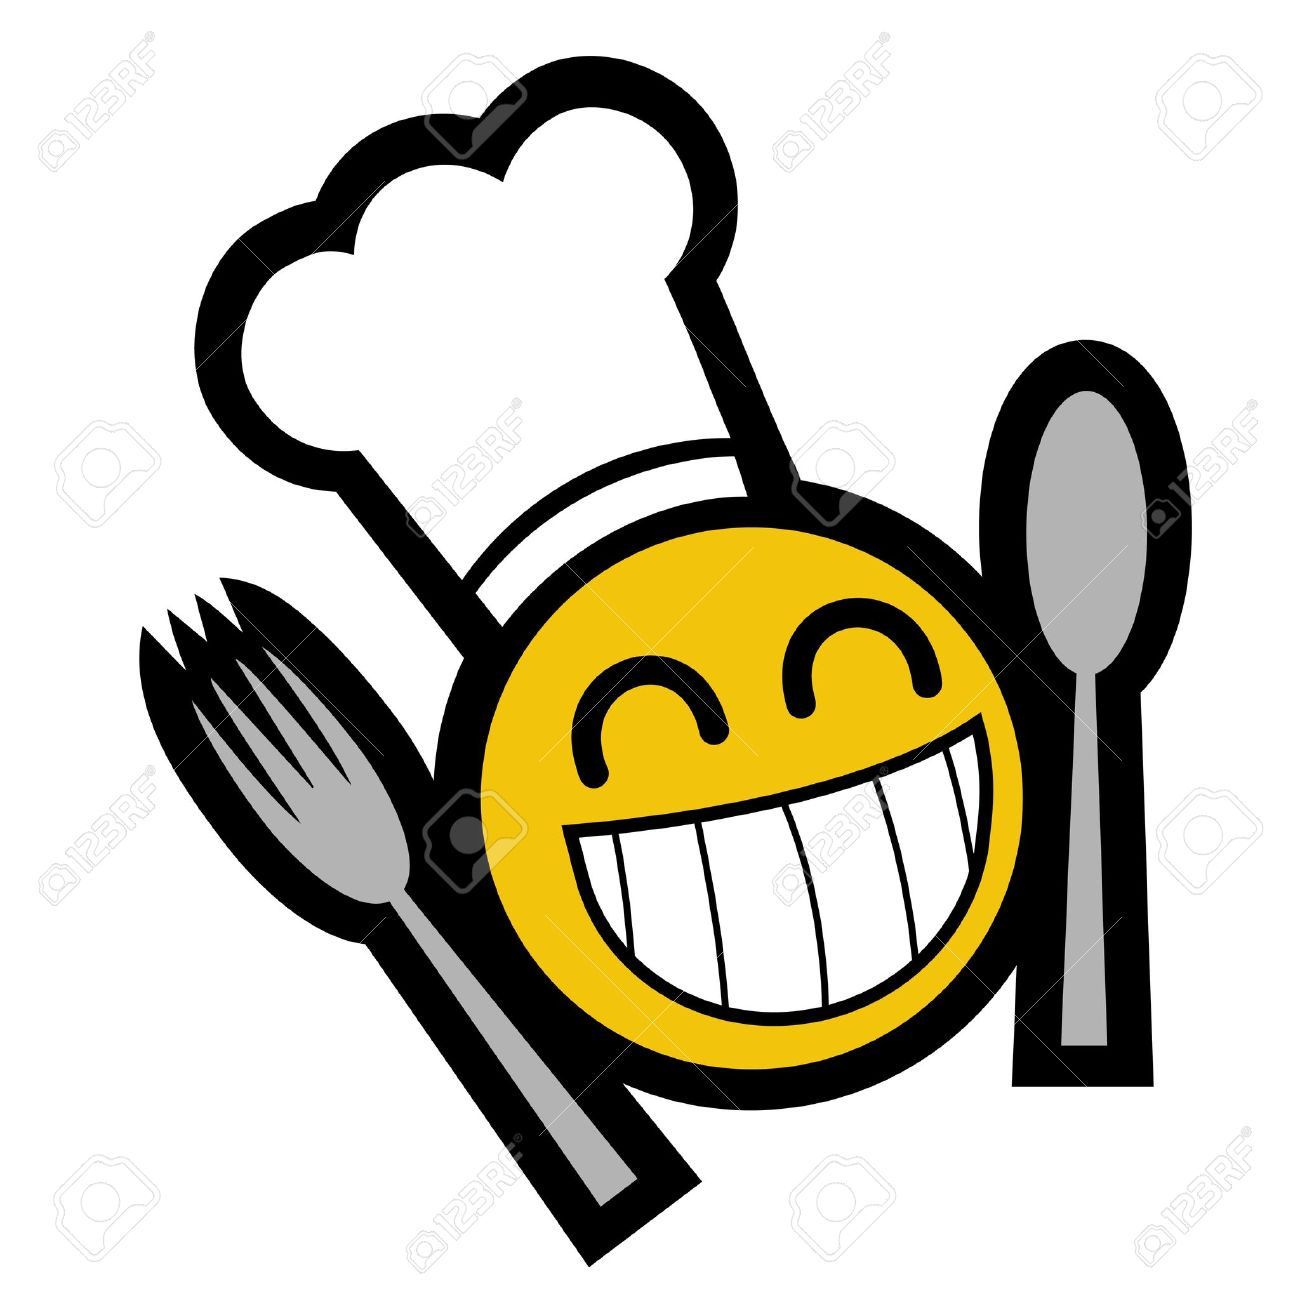 Eating Smiley Face Clipart - Clipart Kid